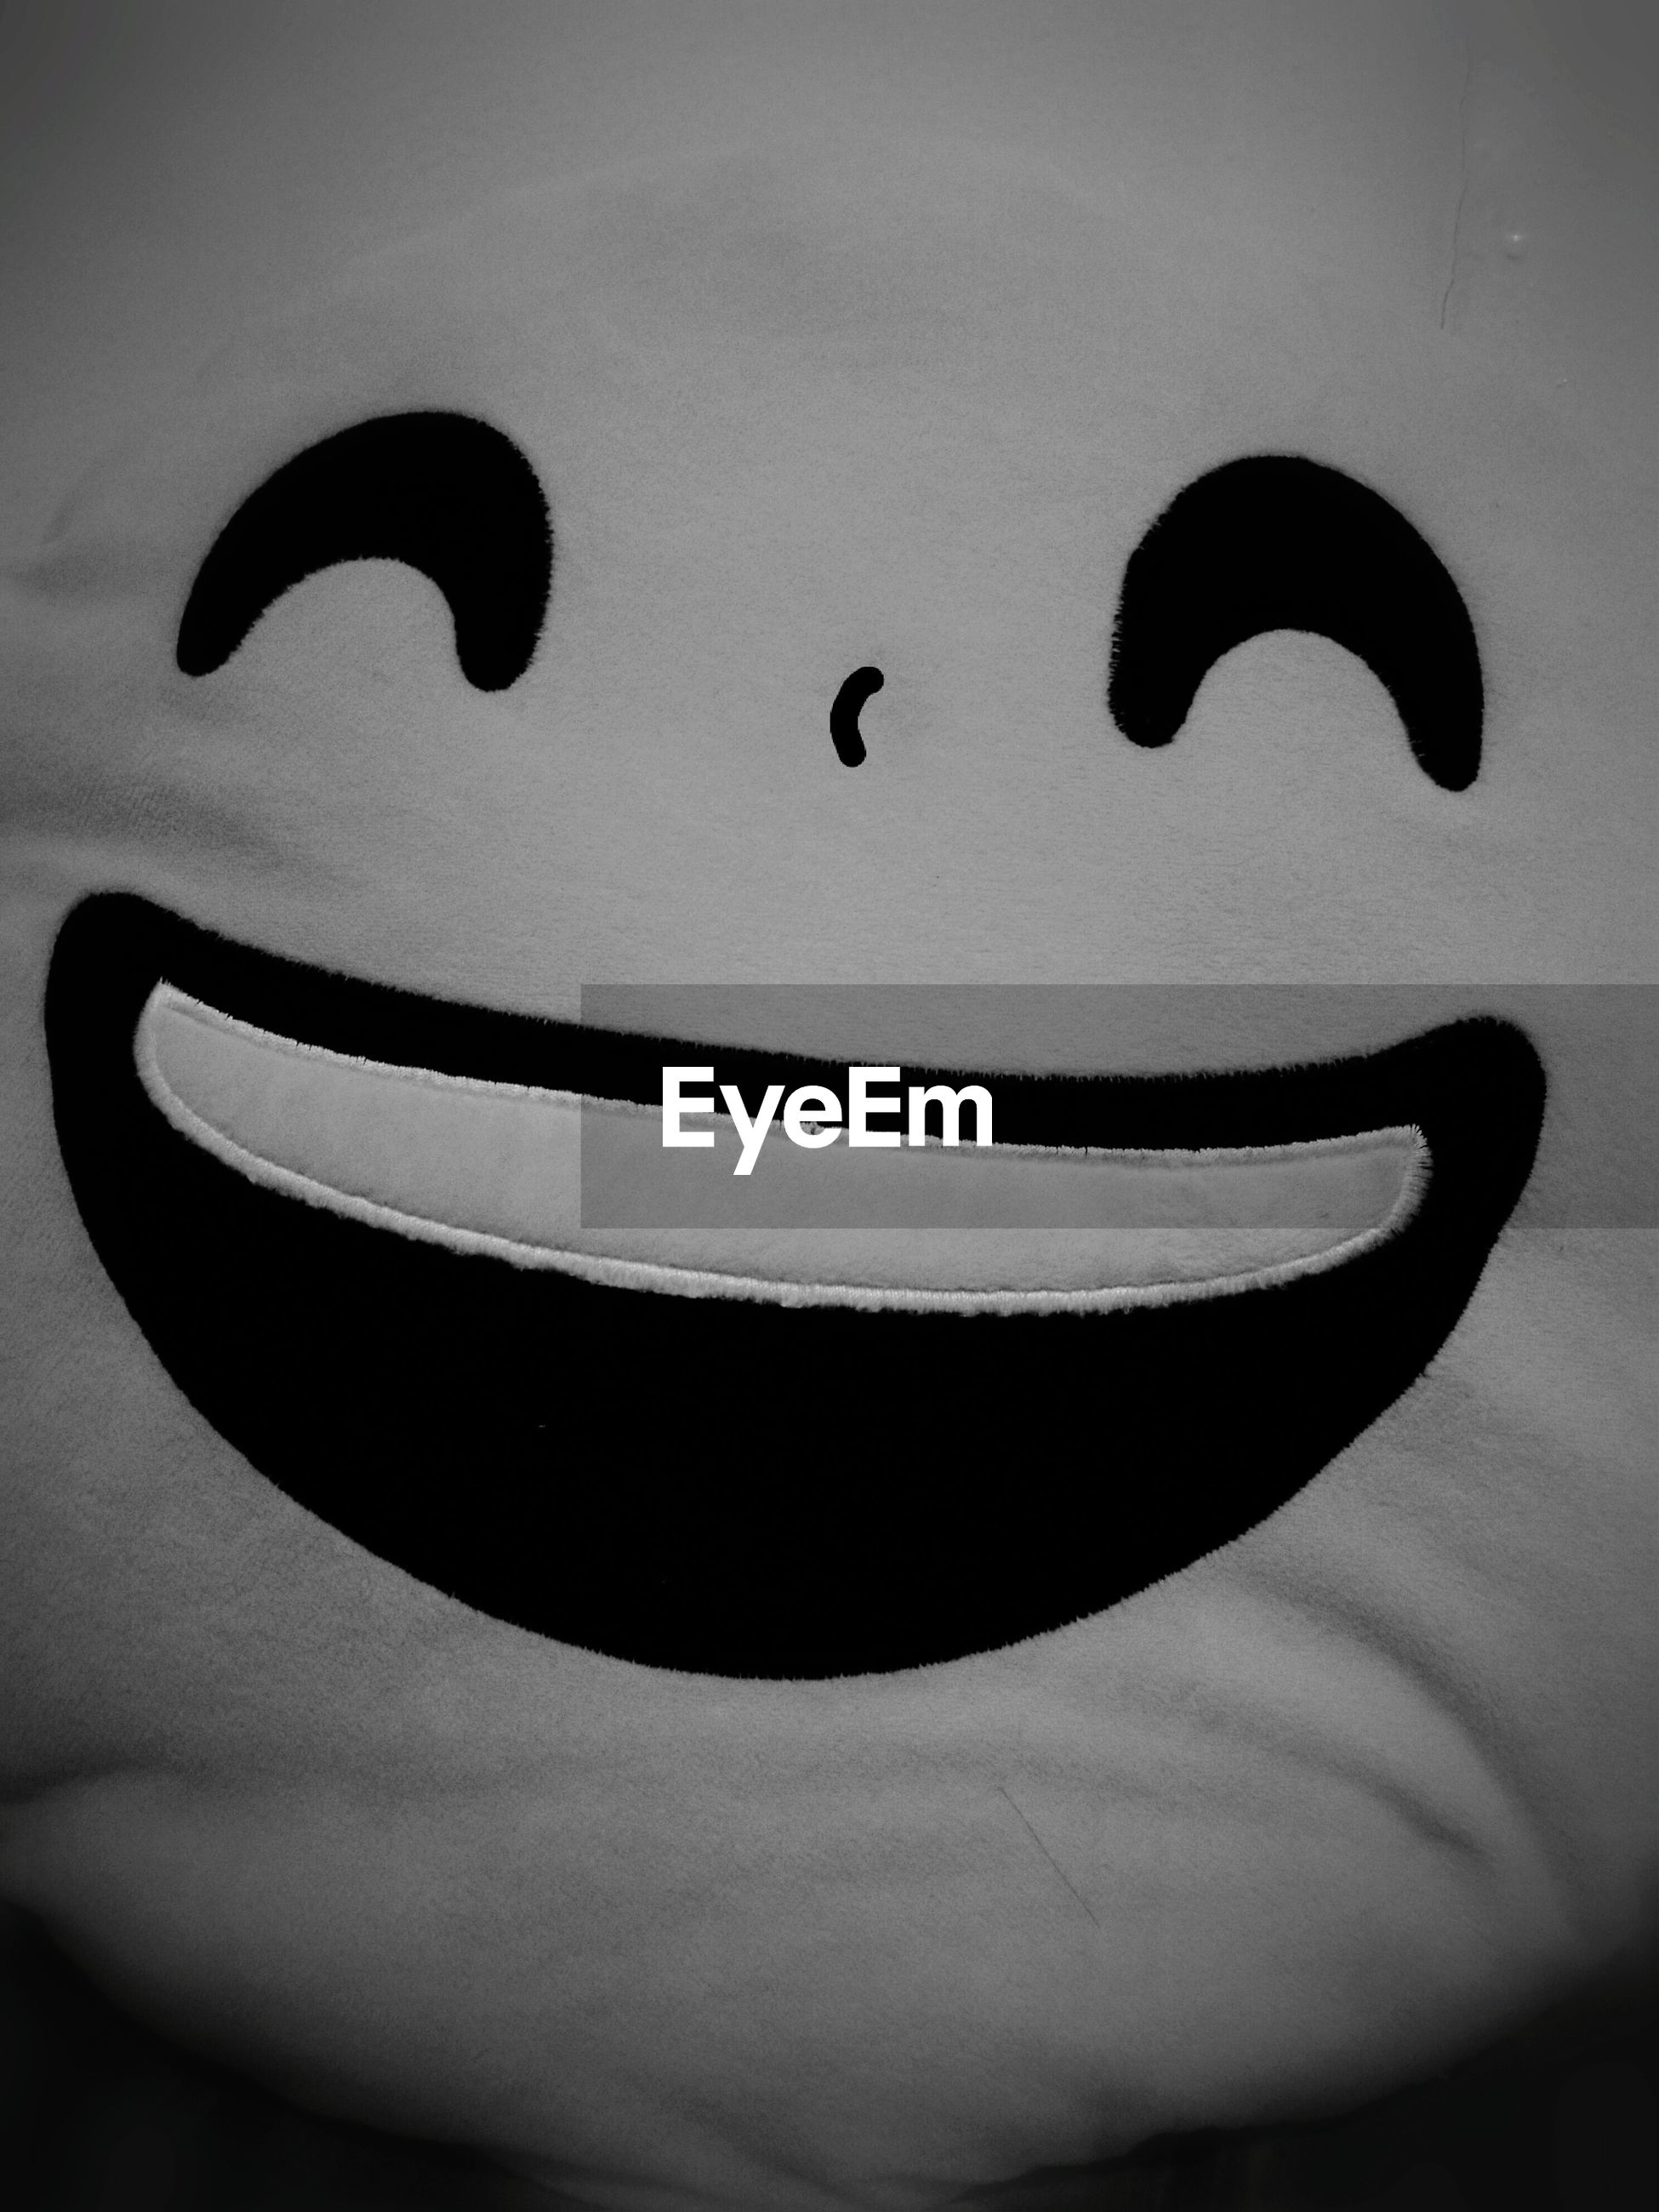 anthropomorphic face, anthropomorphic smiley face, close-up, no people, smiley face, indoors, animal themes, day